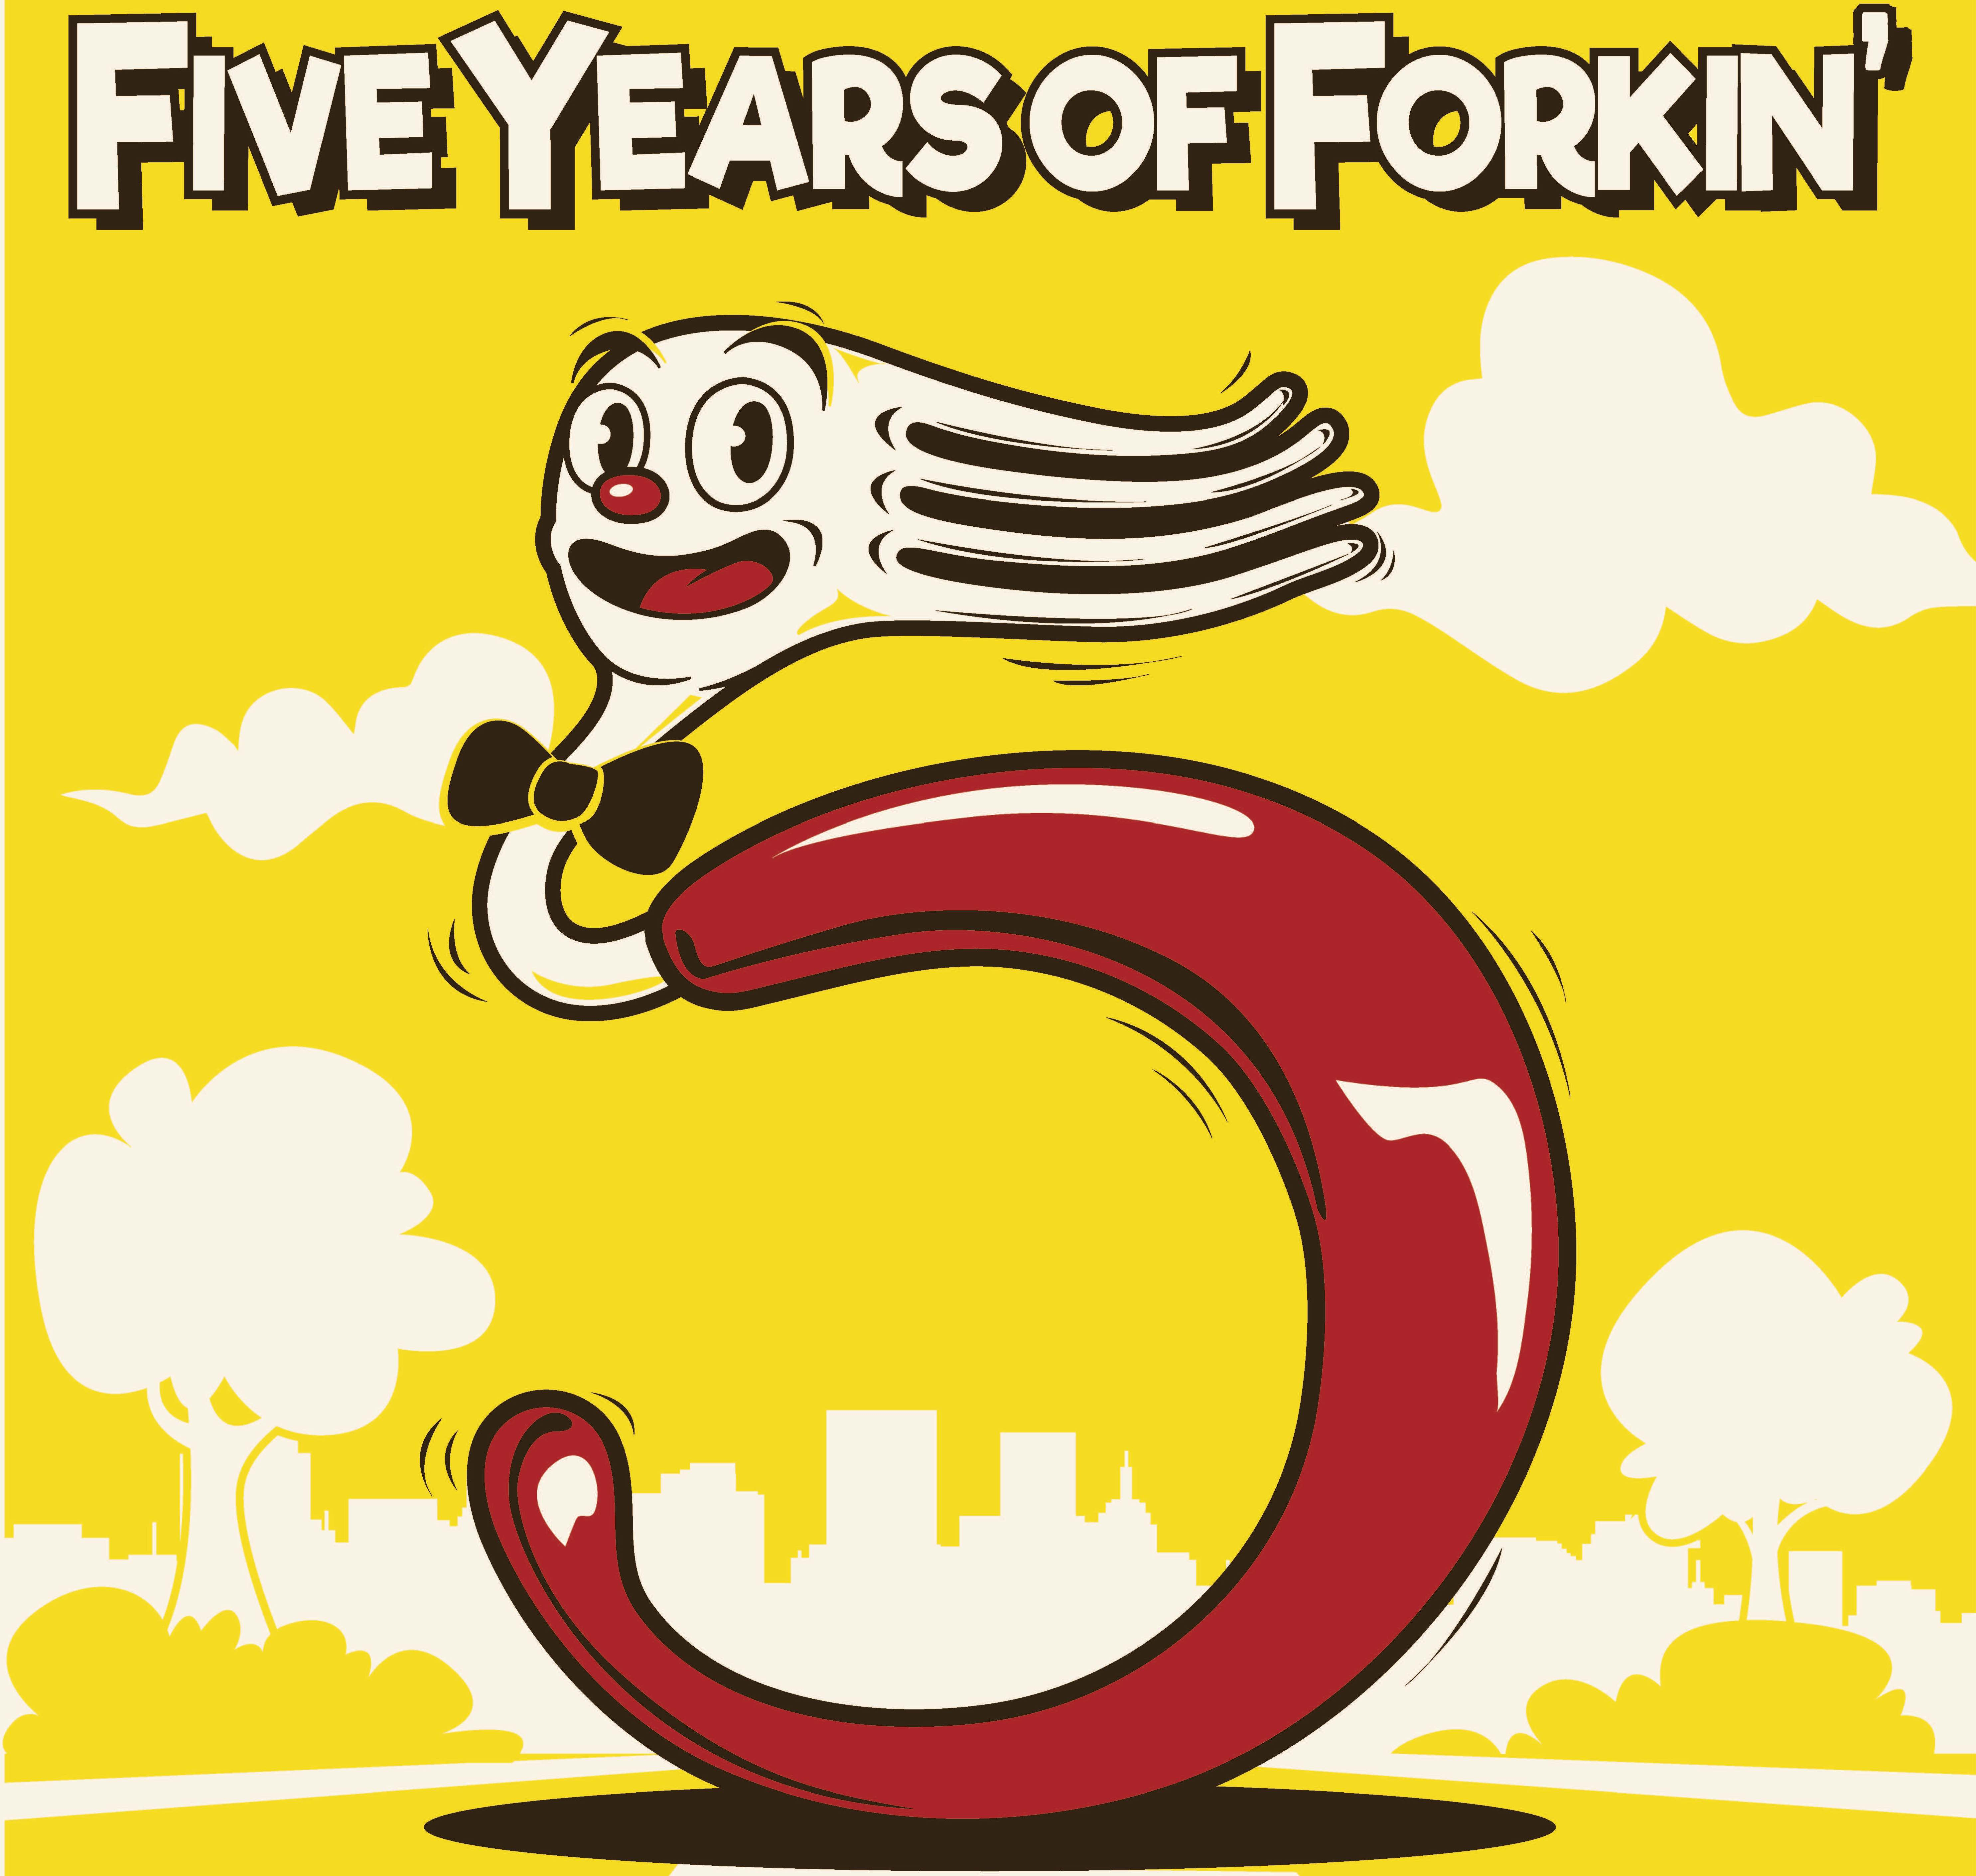 All Night Prong – 5 Years of Forkin'